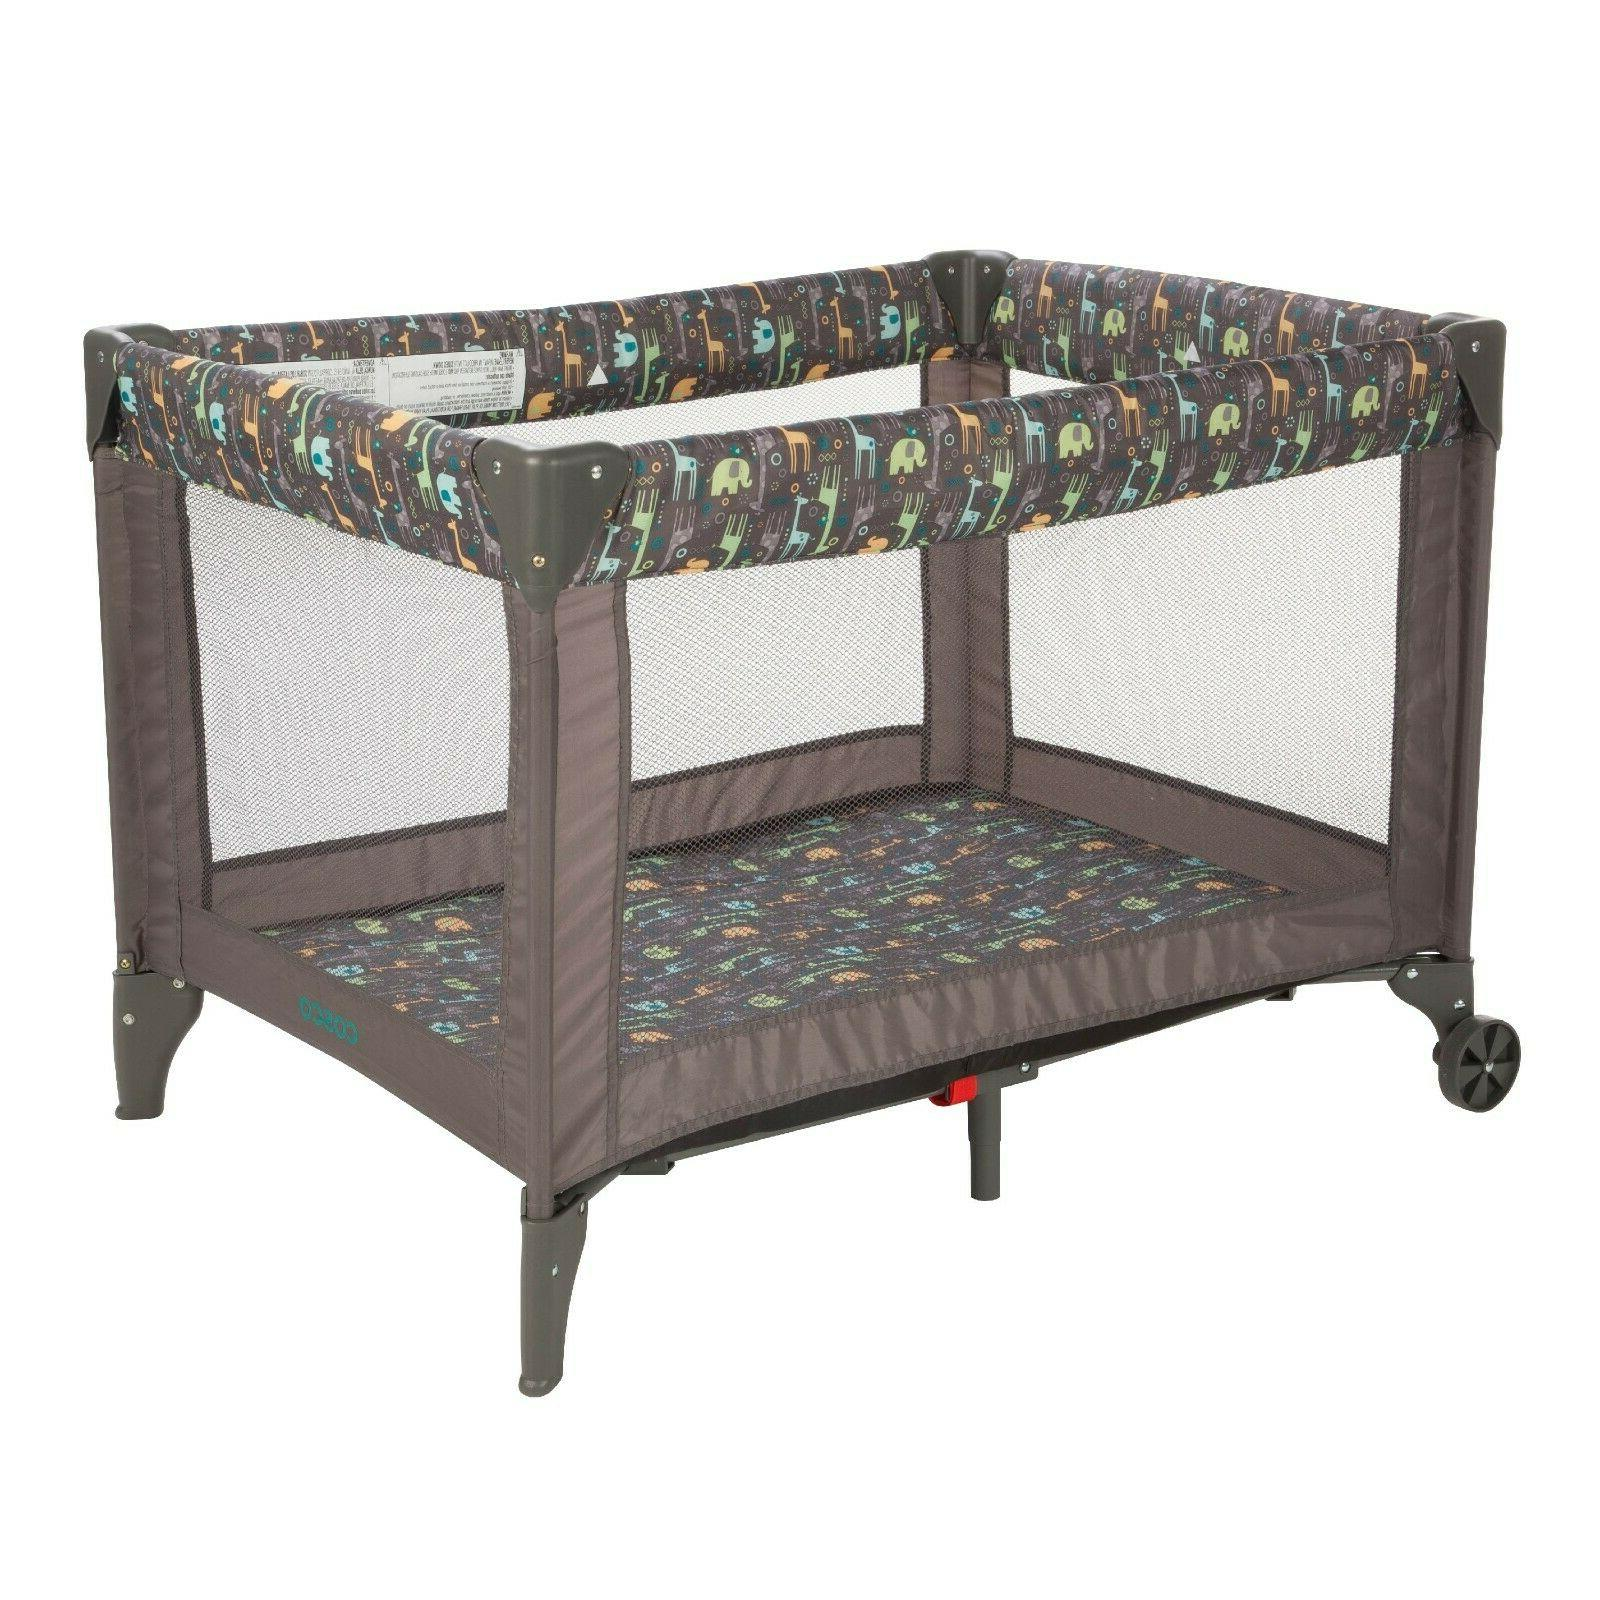 CRIB PLAYPEN Kid Portable Travel Bassinet